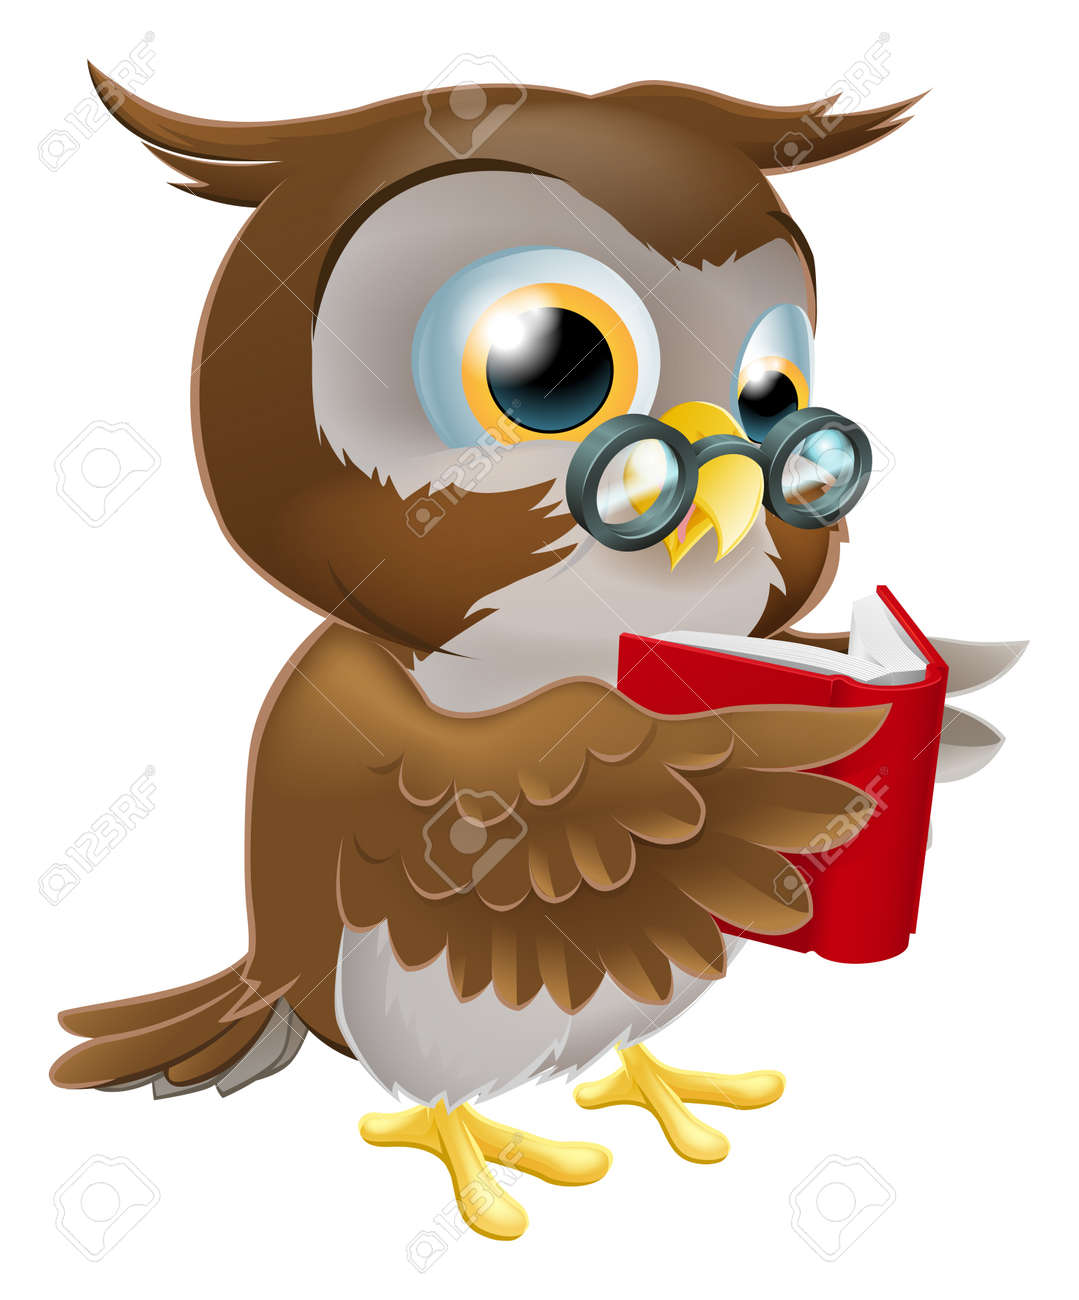 An illustration of a cute wise cartoon owl character wearing glasses and reading a book Stock Vector - 17174621